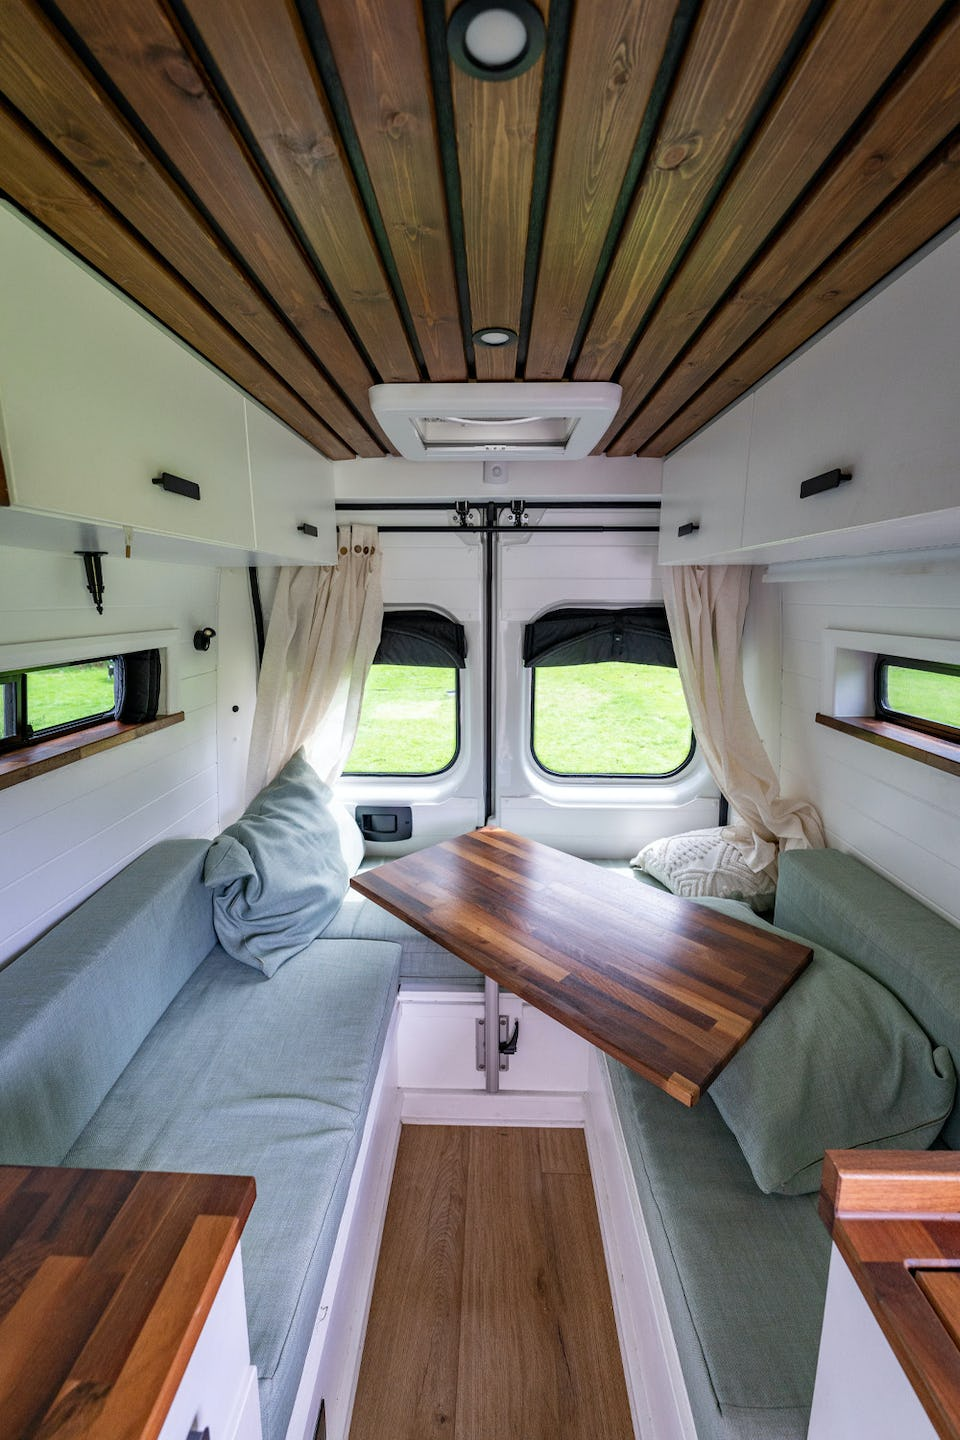 Van layout with Dinette bed